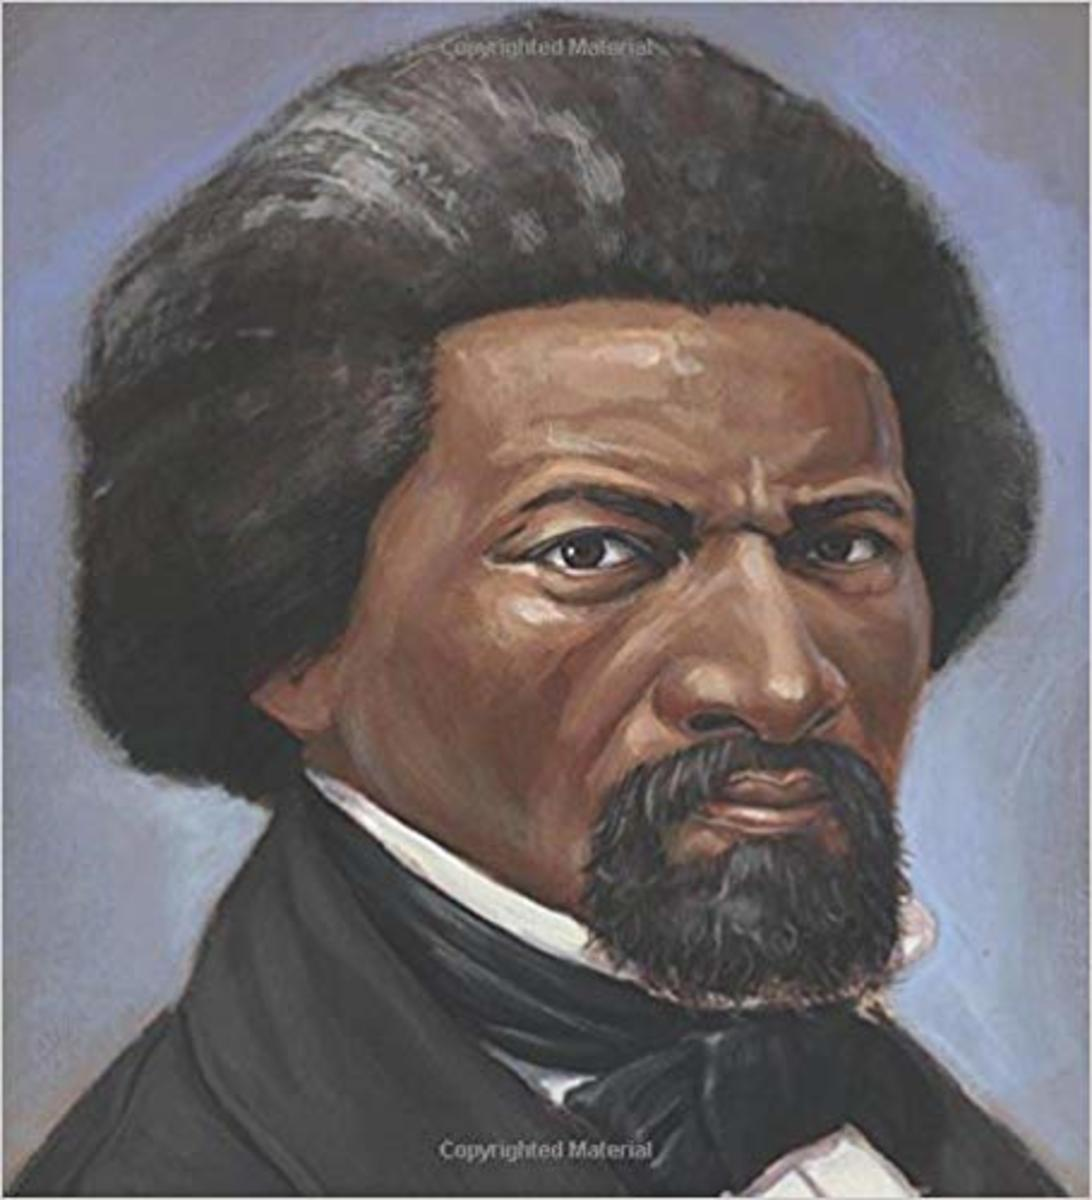 Frederick's Journey: The Life of Frederick Douglass by Doreen Rappaport